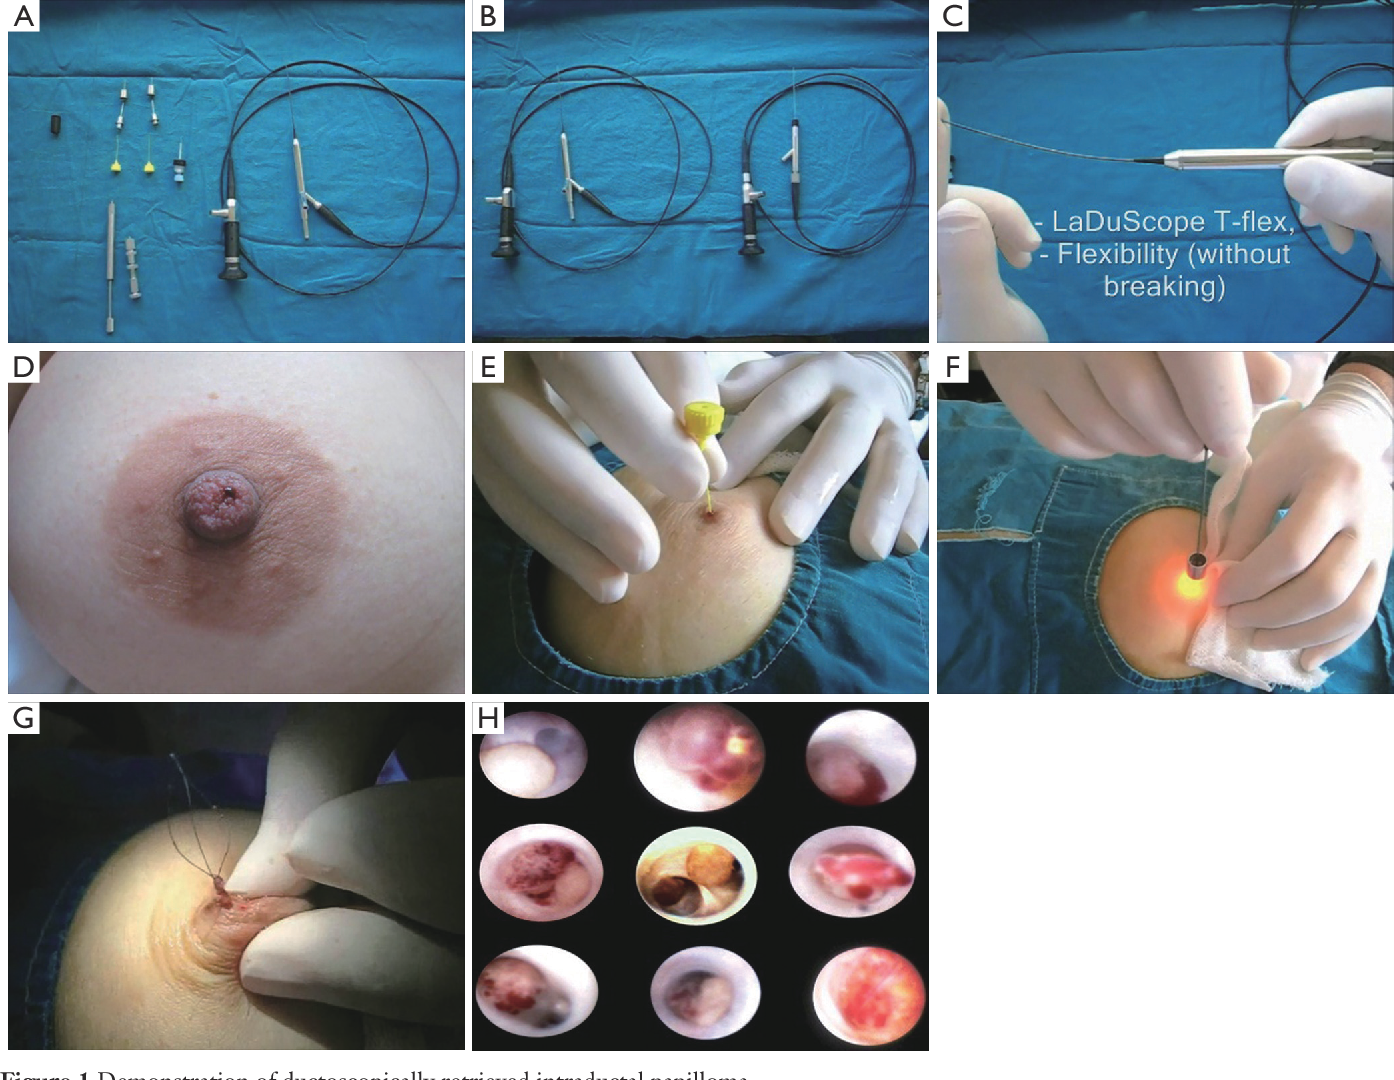 Intraductal papilloma treatment guidelines, Familial cancer author instructions